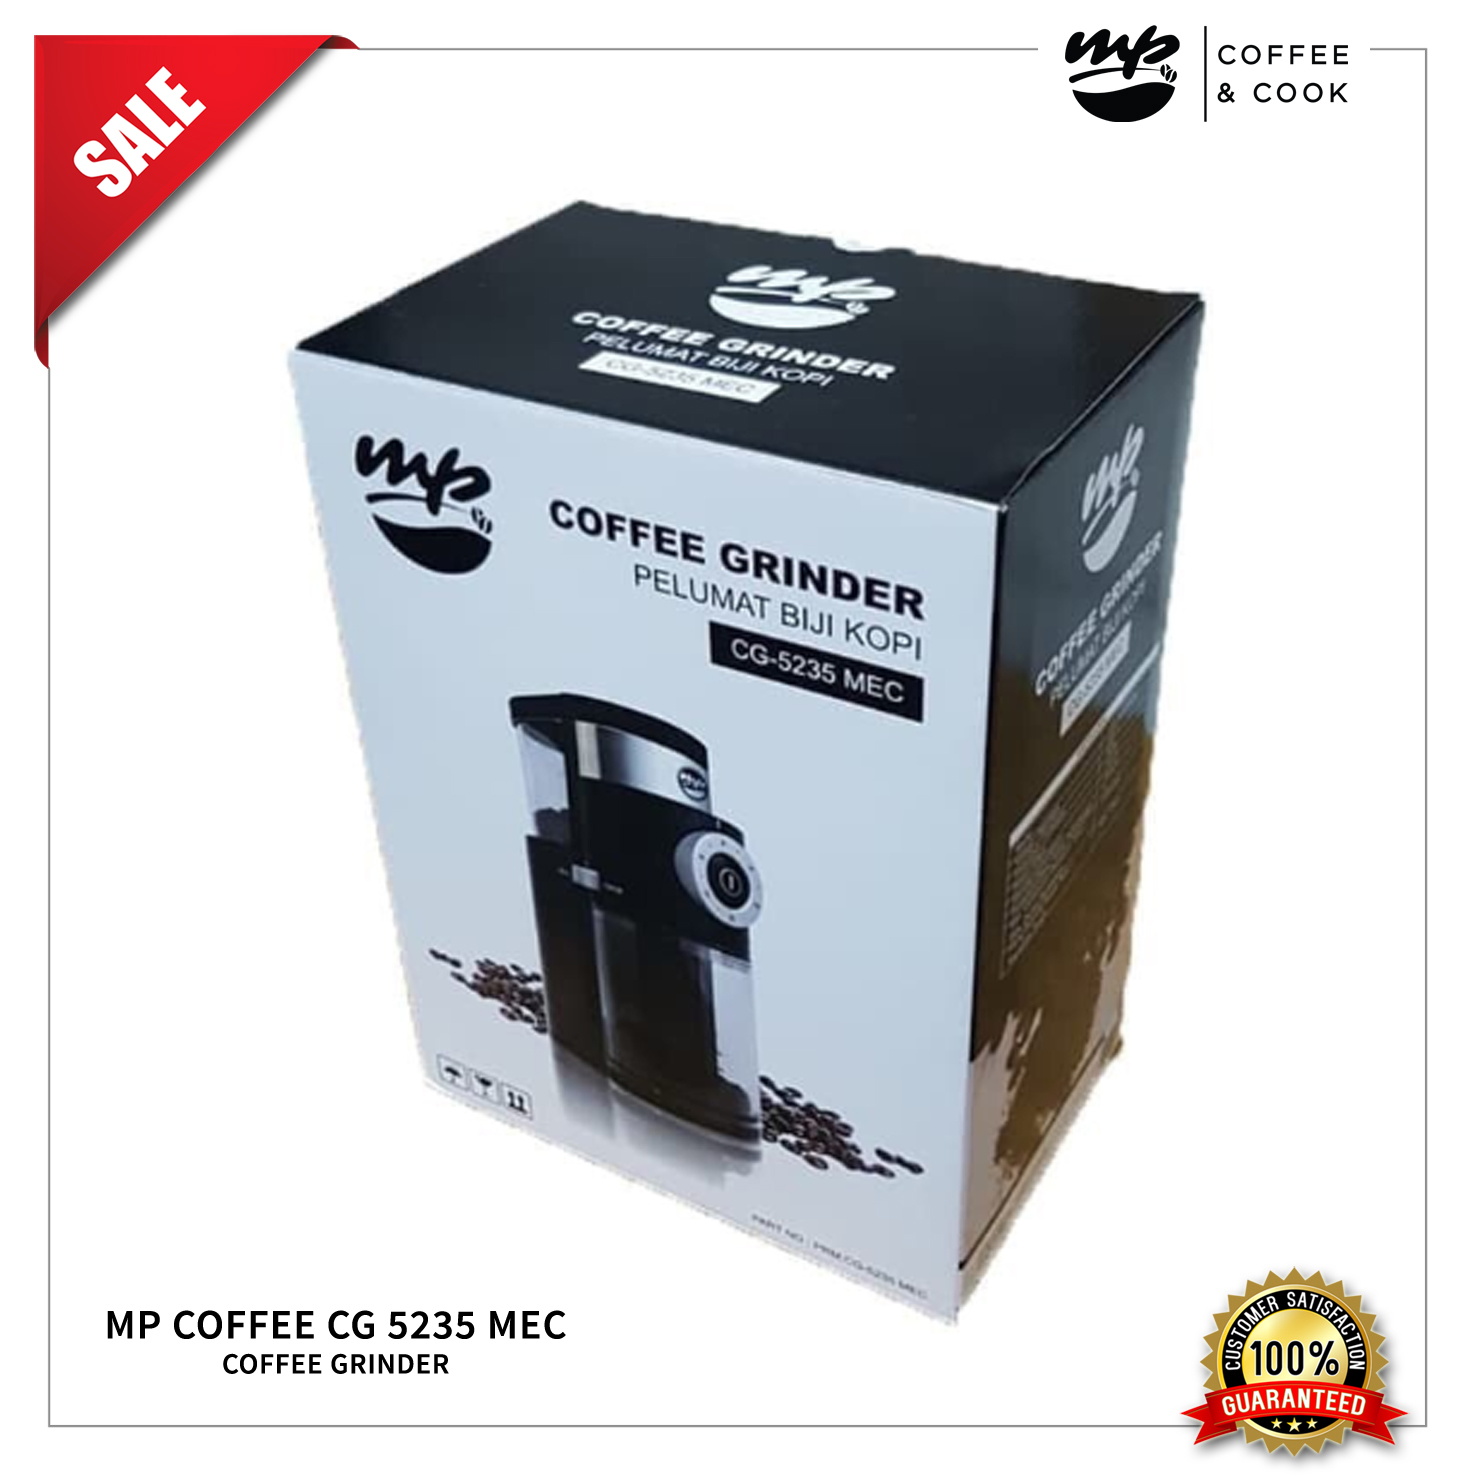 MP COFFEE 5235 MEC – 2